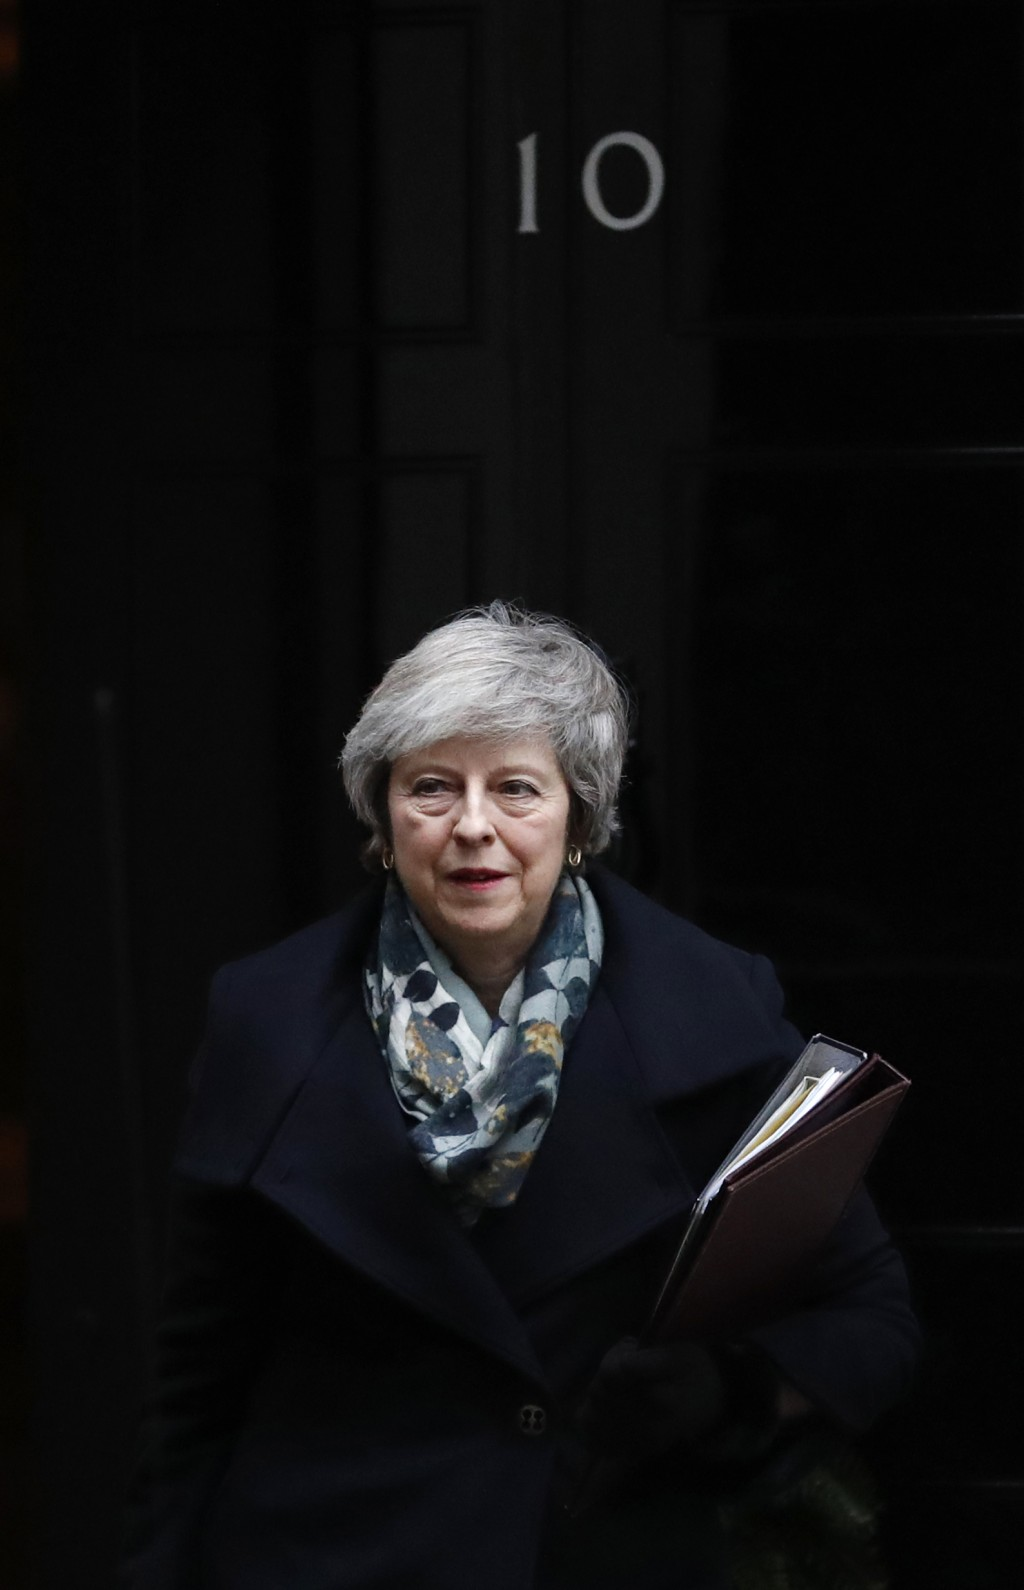 Britain's Prime Minister Theresa May leaves 10 Downing Street, in London Monday, Dec. 17, 2018, for the House of Commons to make a statement on the EU